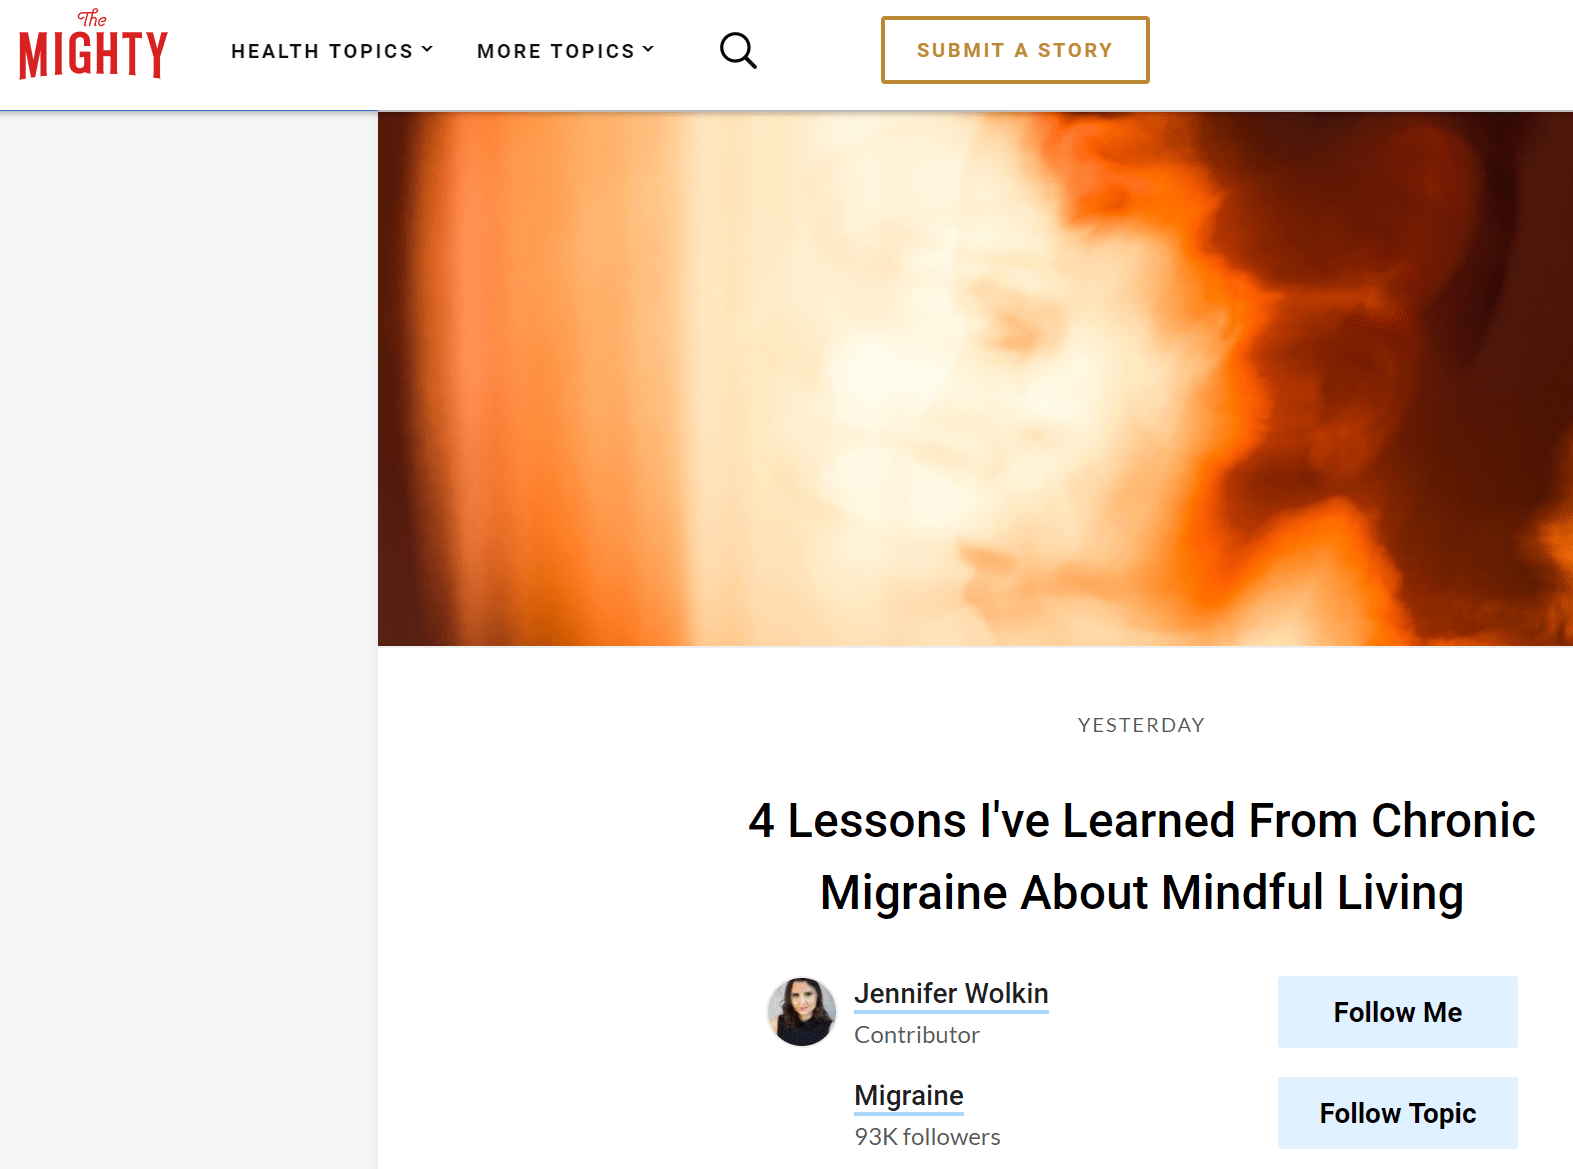 Repost: 4 Lessons I've Learned From Chronic Migraine About Mindful Living